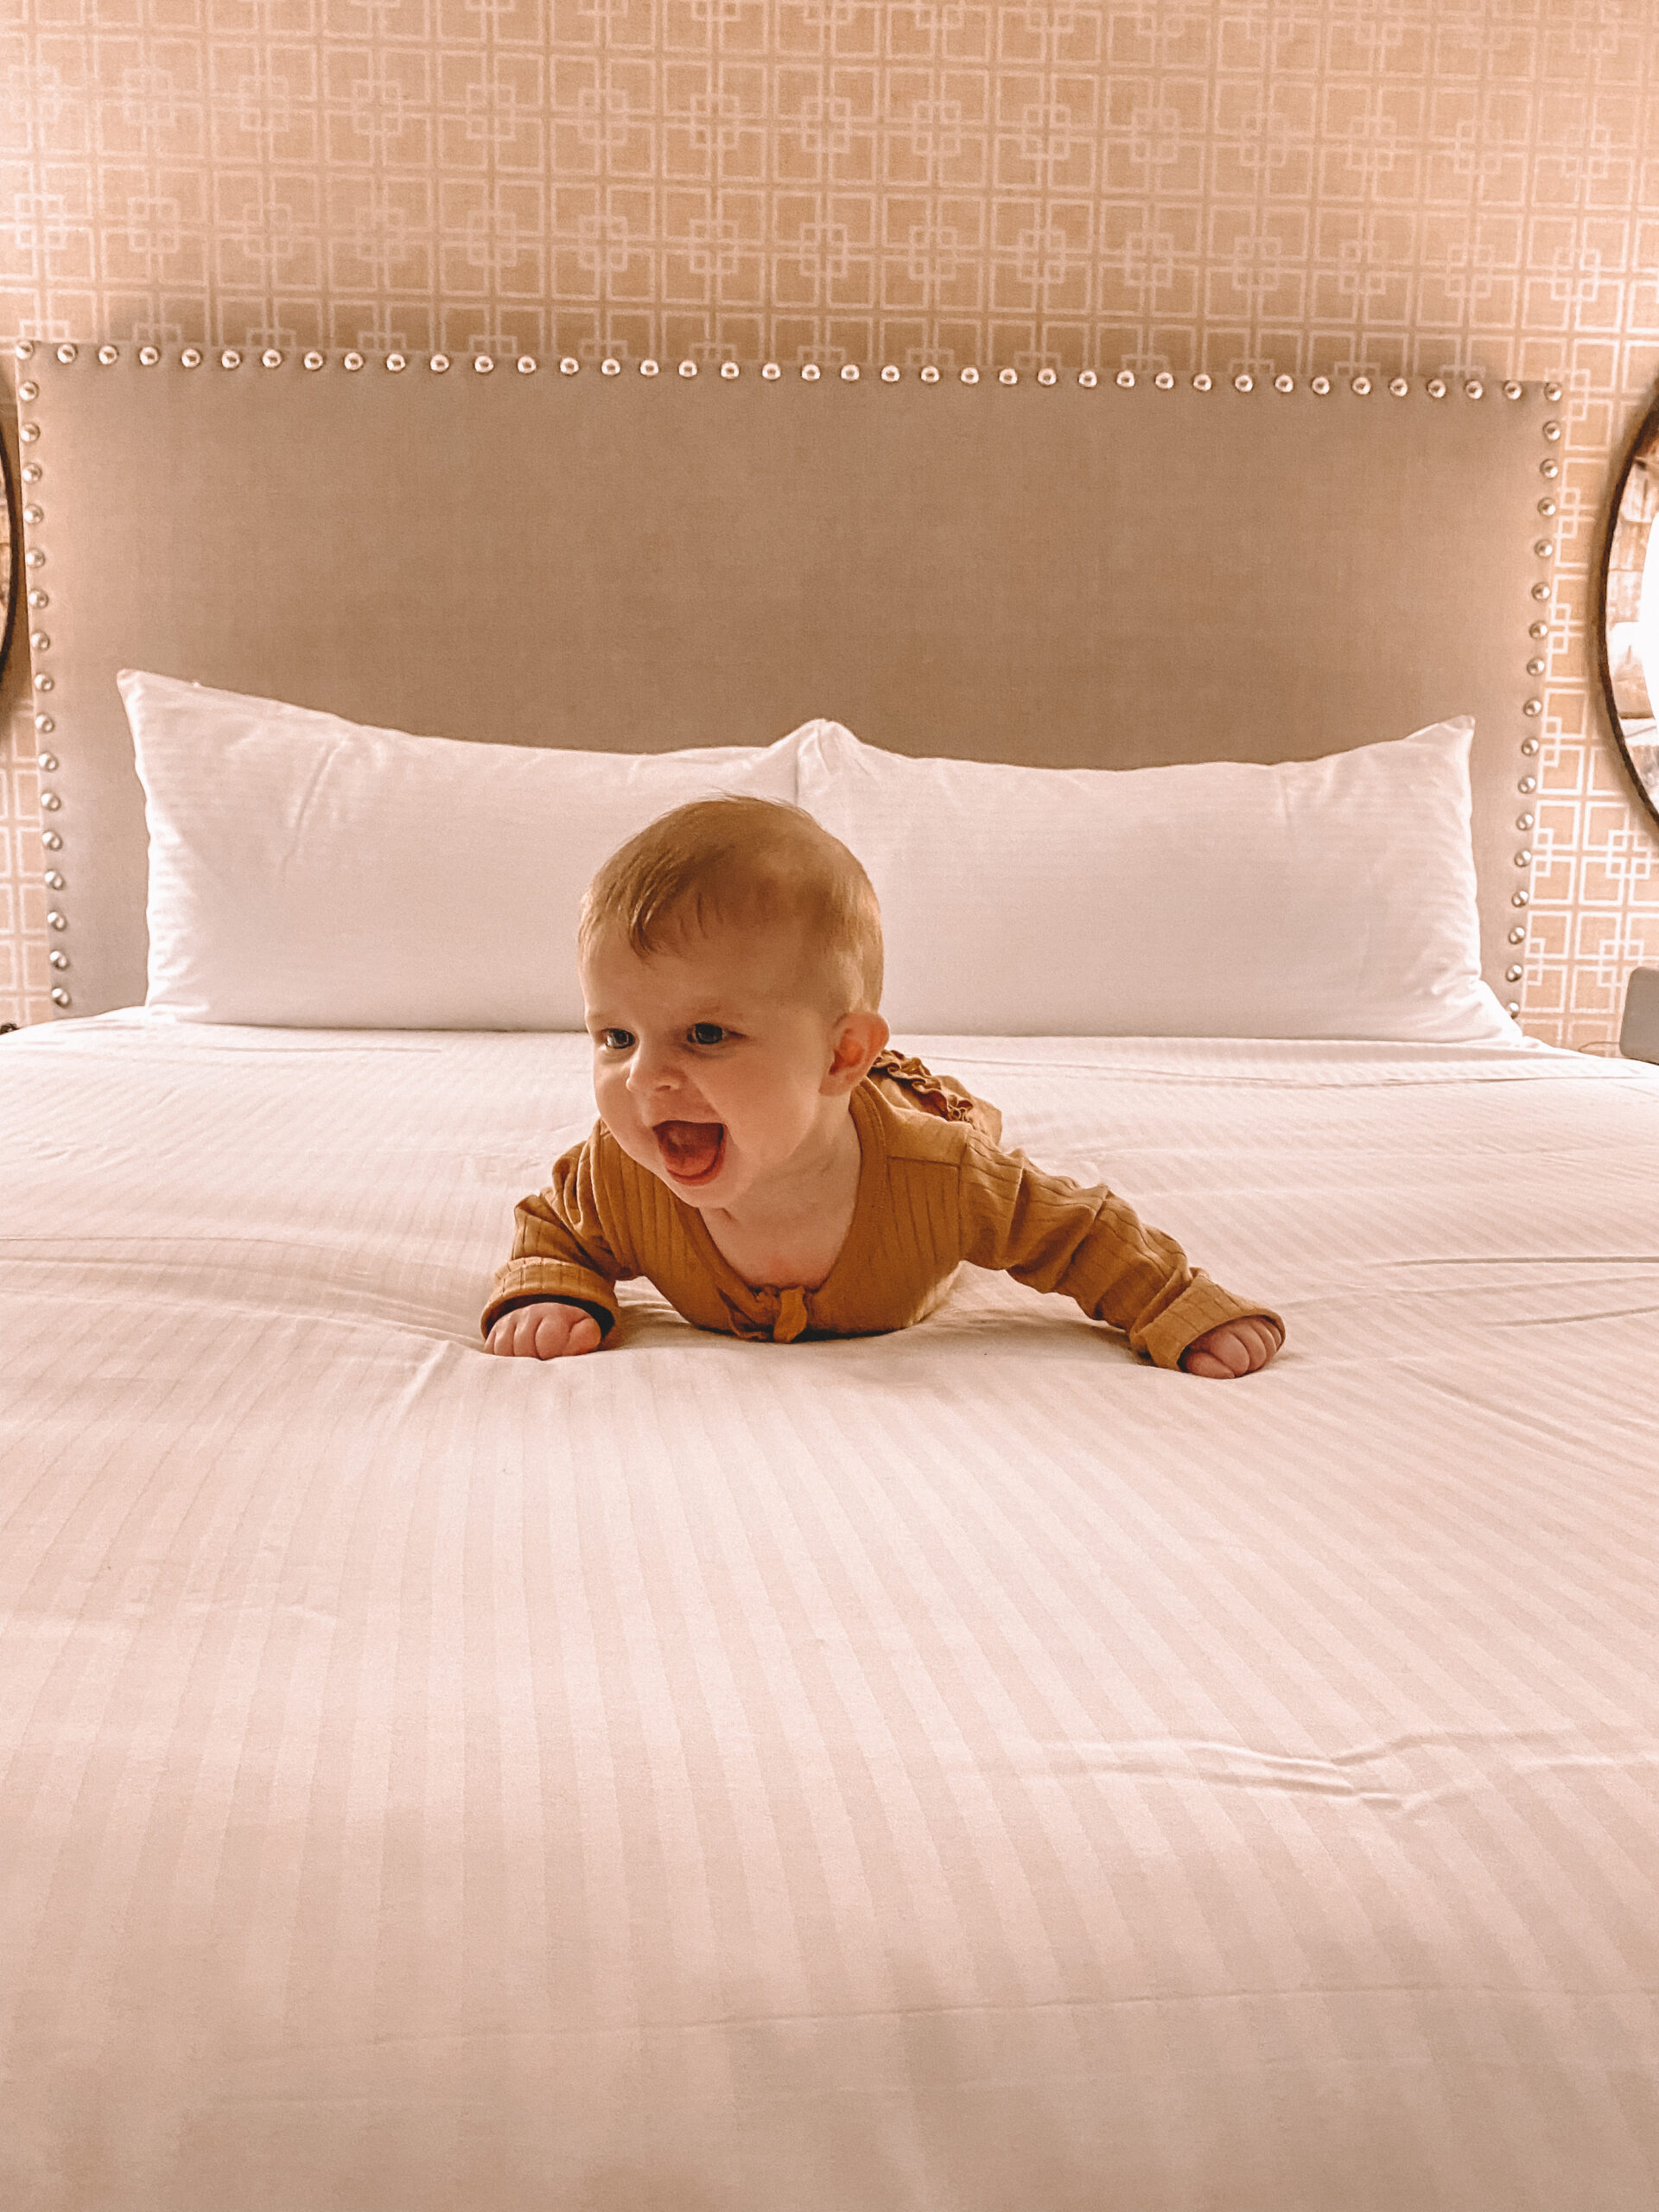 7 Tips for Staying in a Hotel With a Baby